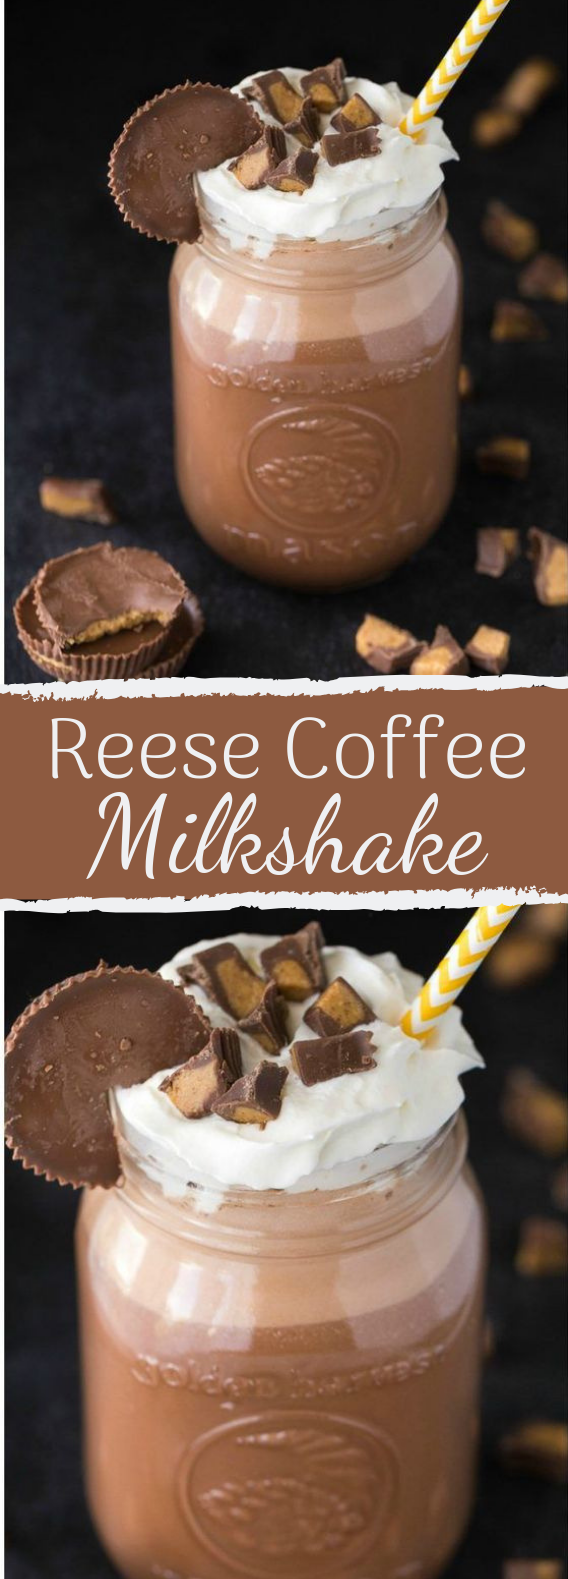 Reese Coffee Milkshake #drink #kidfriendly